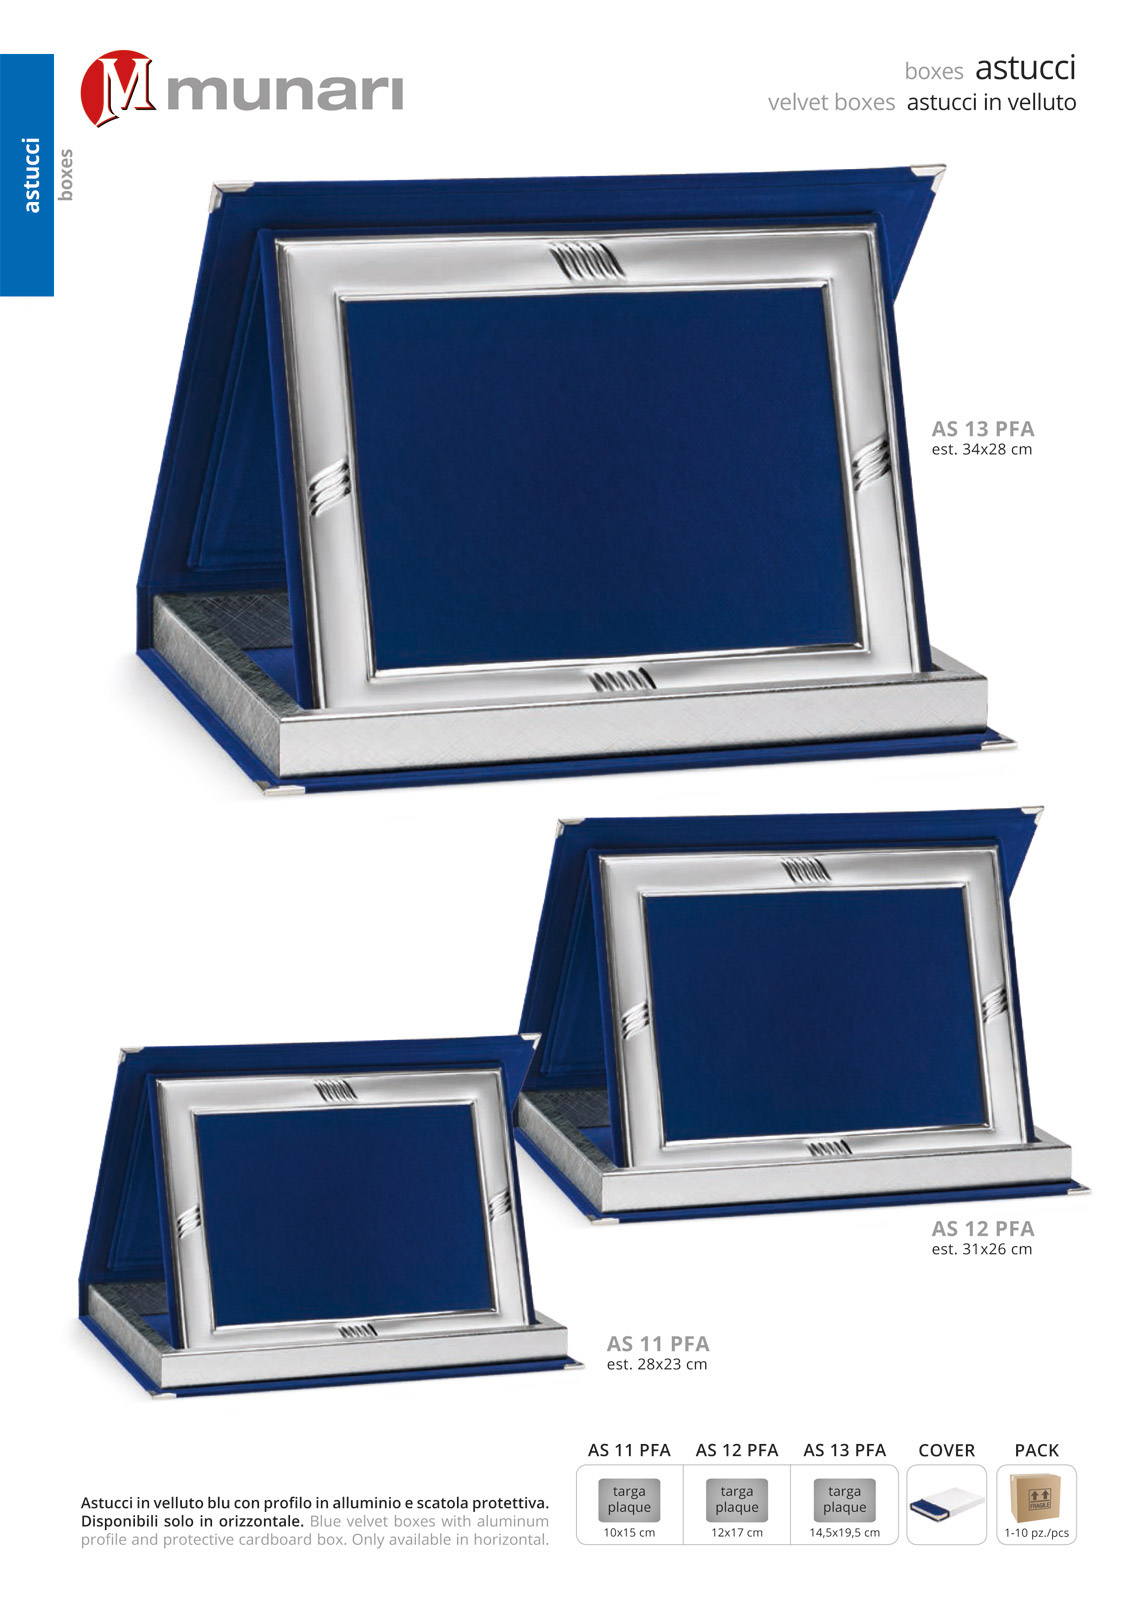 Blue velvet boxes series AS 10PFA with aluminum profile